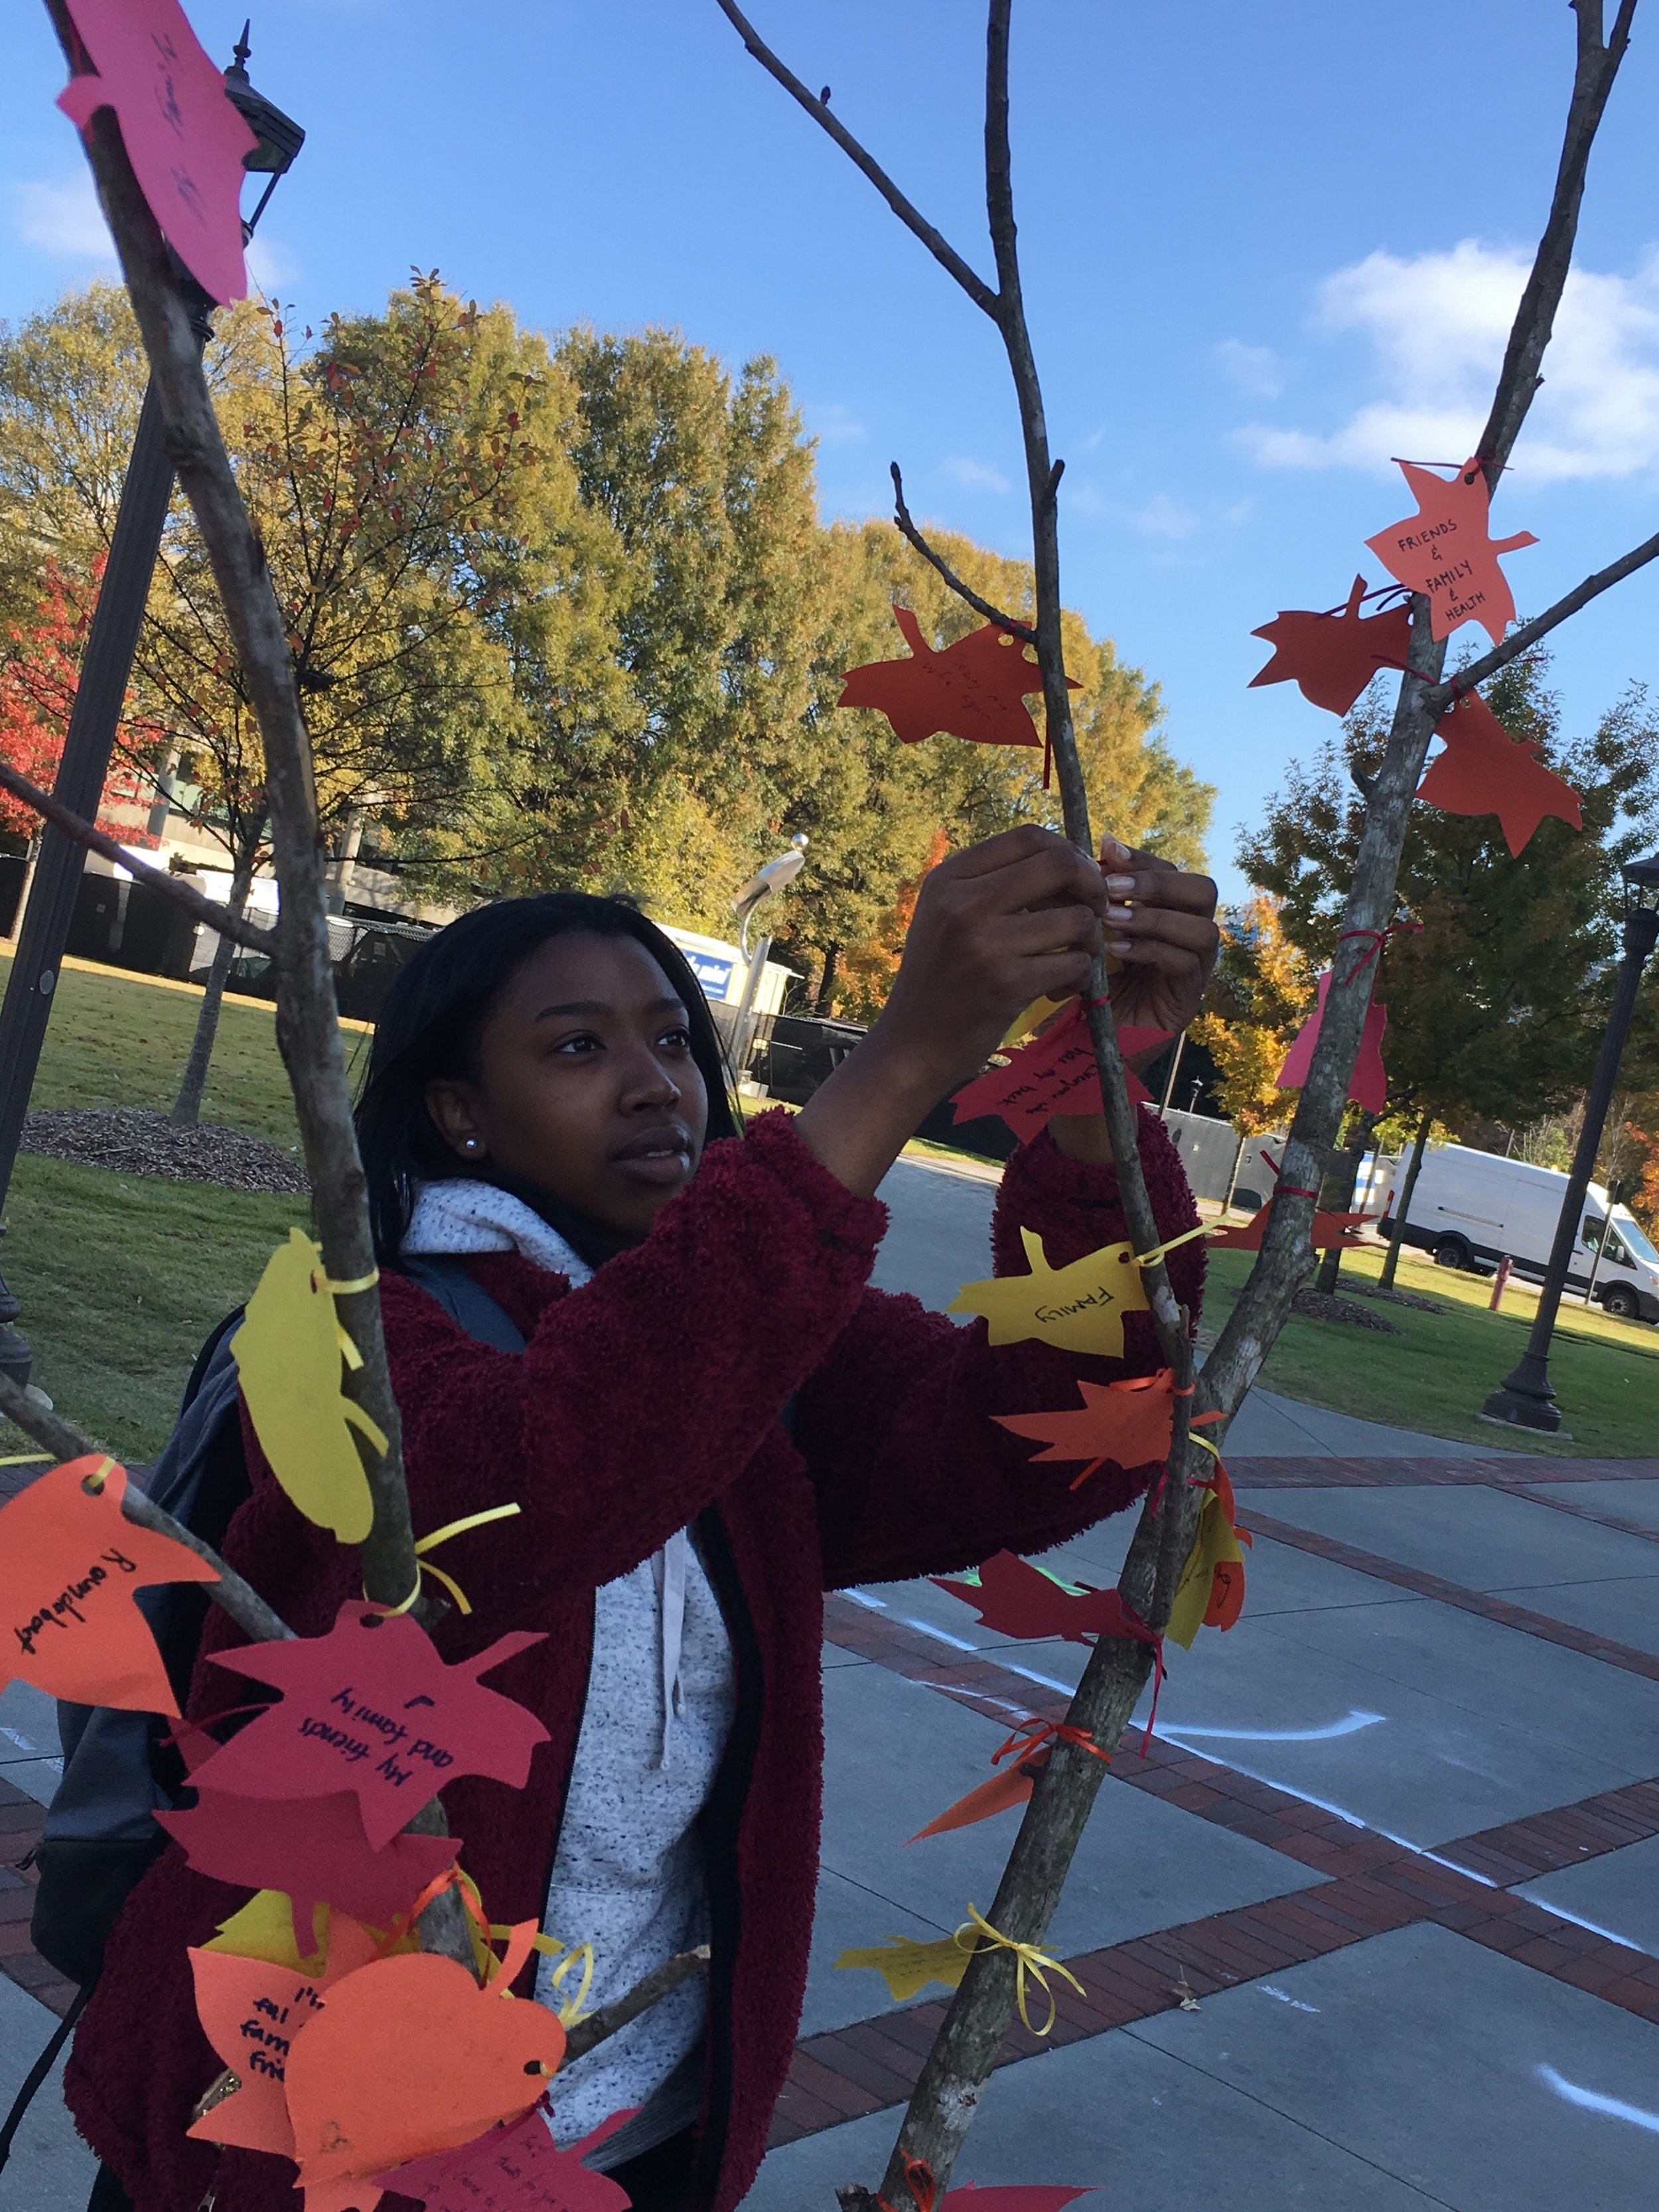 A girl hanging a leaf on the tree.